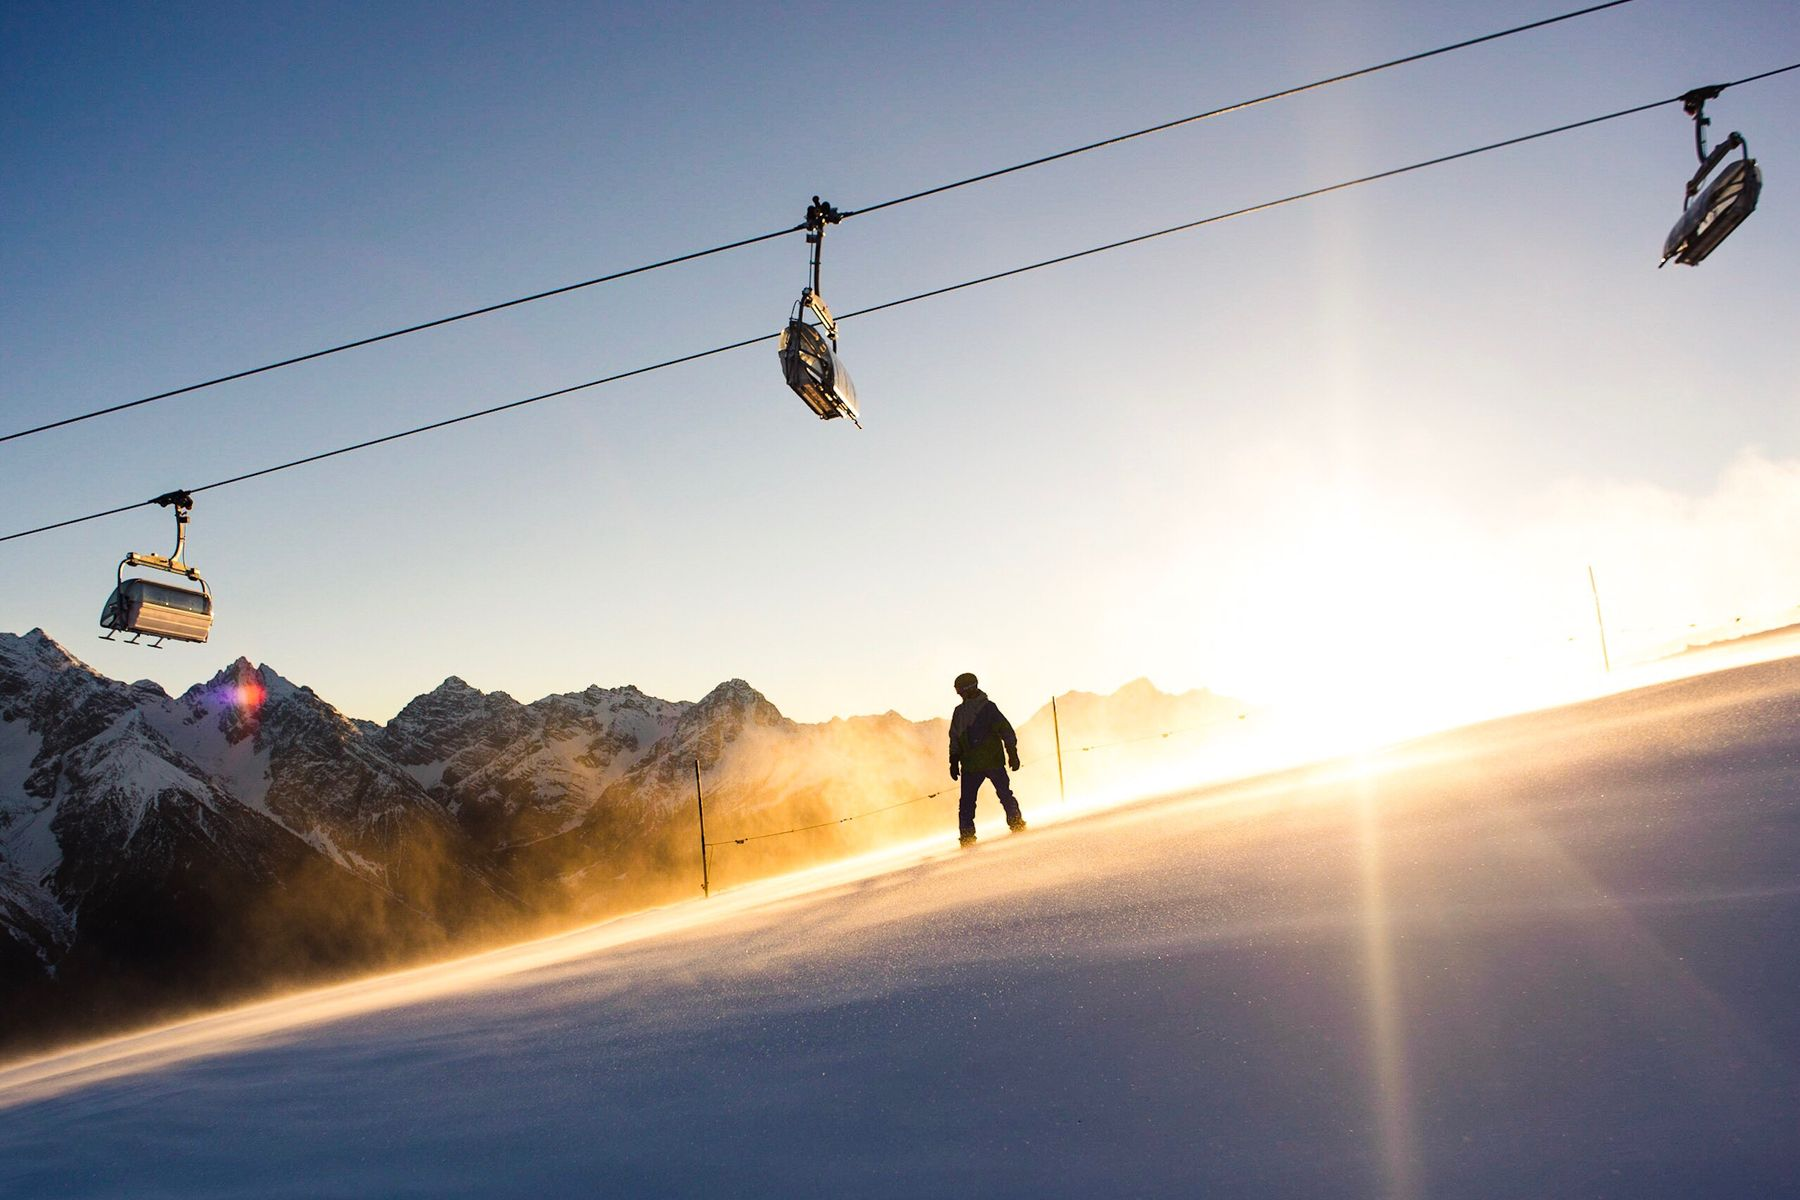 A skiier on a slope beneath a cablecar, with the sun setting behind them